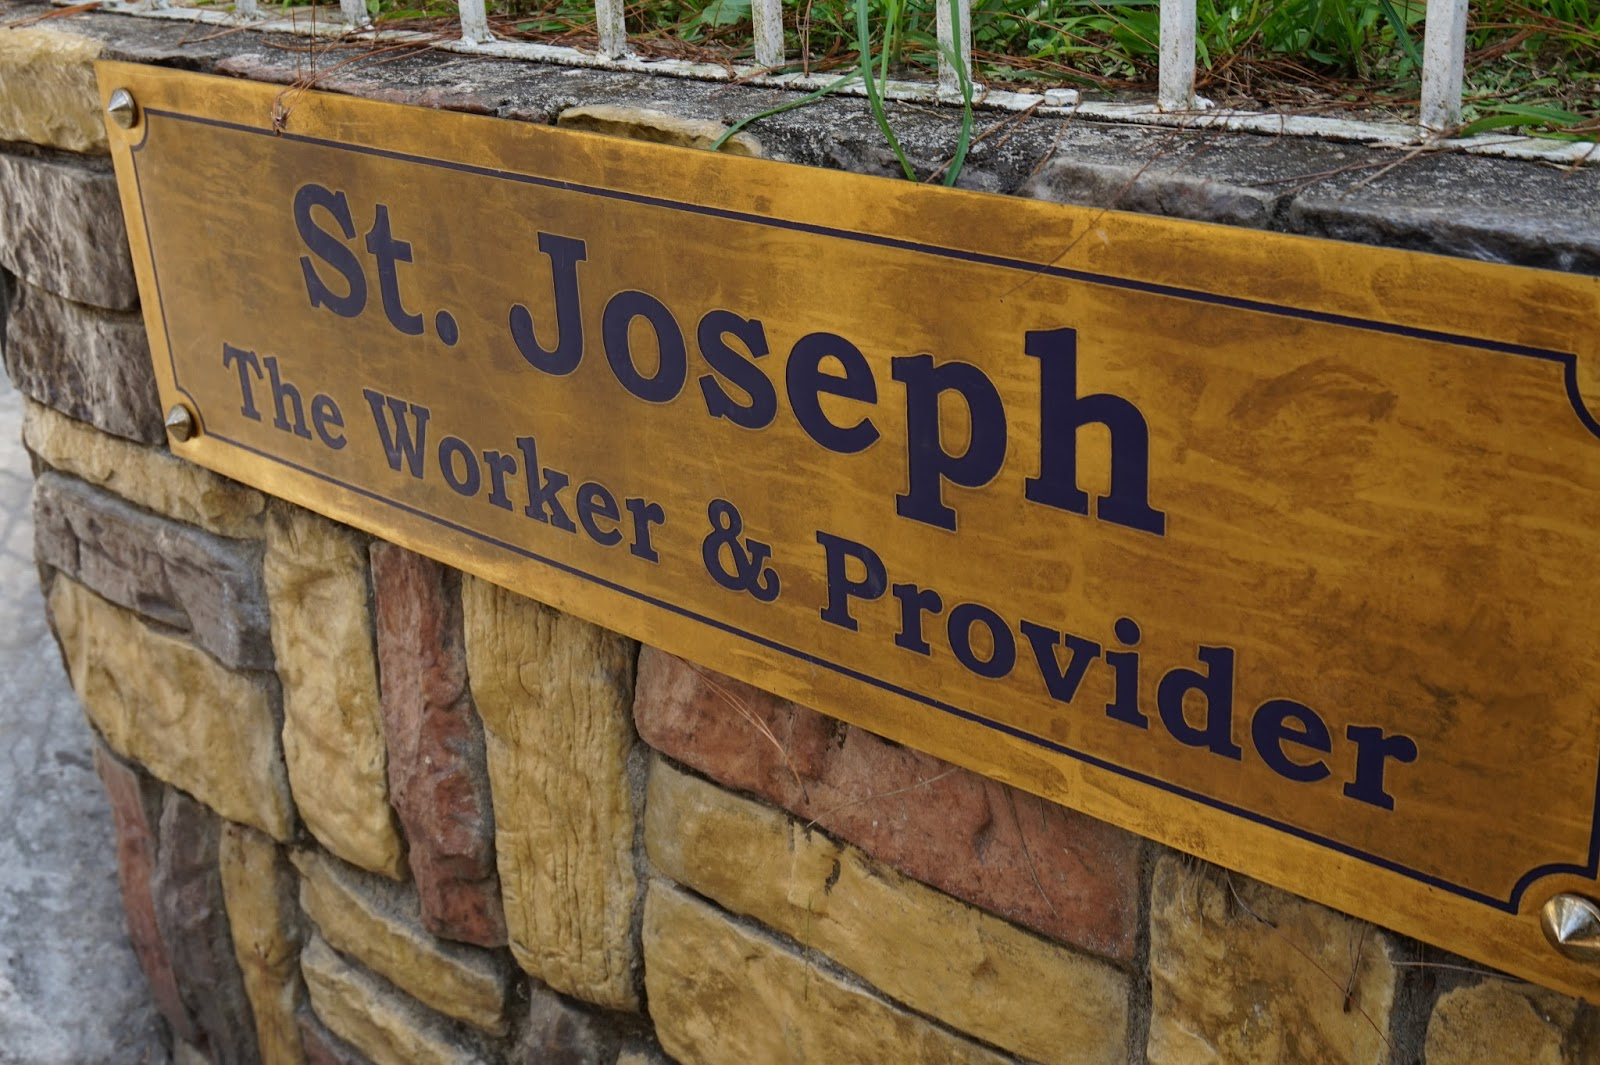 St. Joseph the Worker and Provider